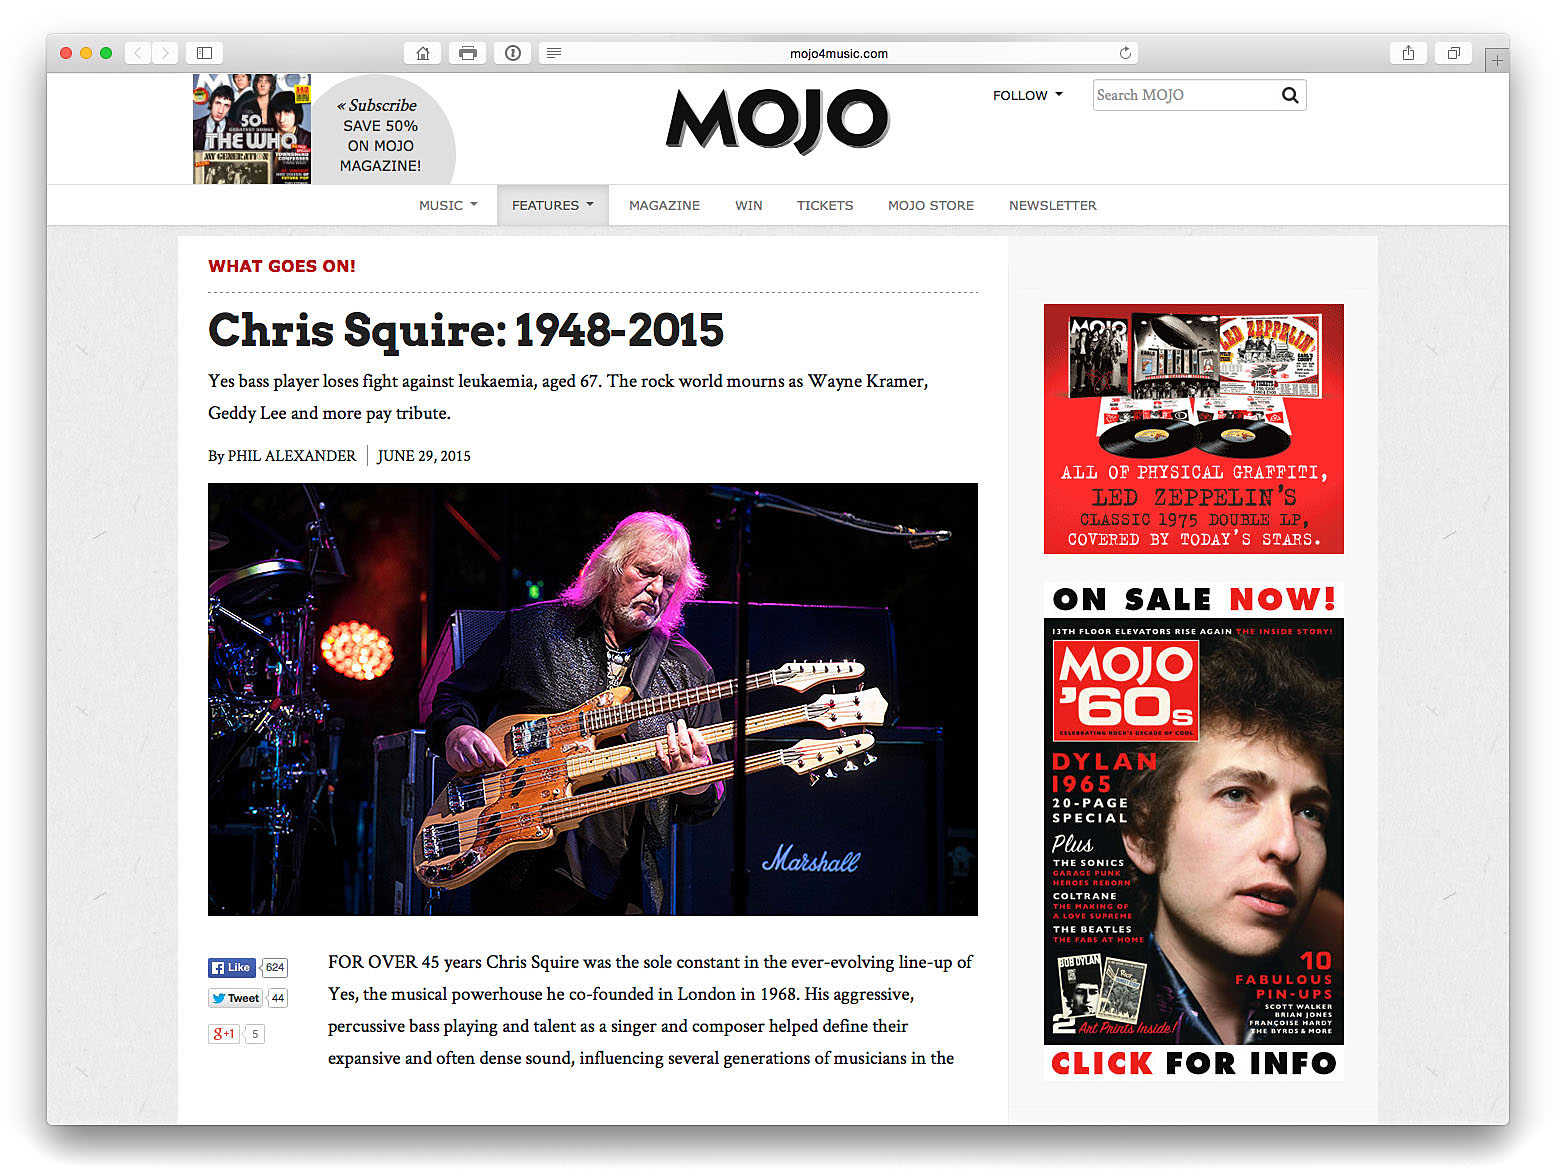 Jerome_Brunet_Chris_Squire_Mojo_magazine